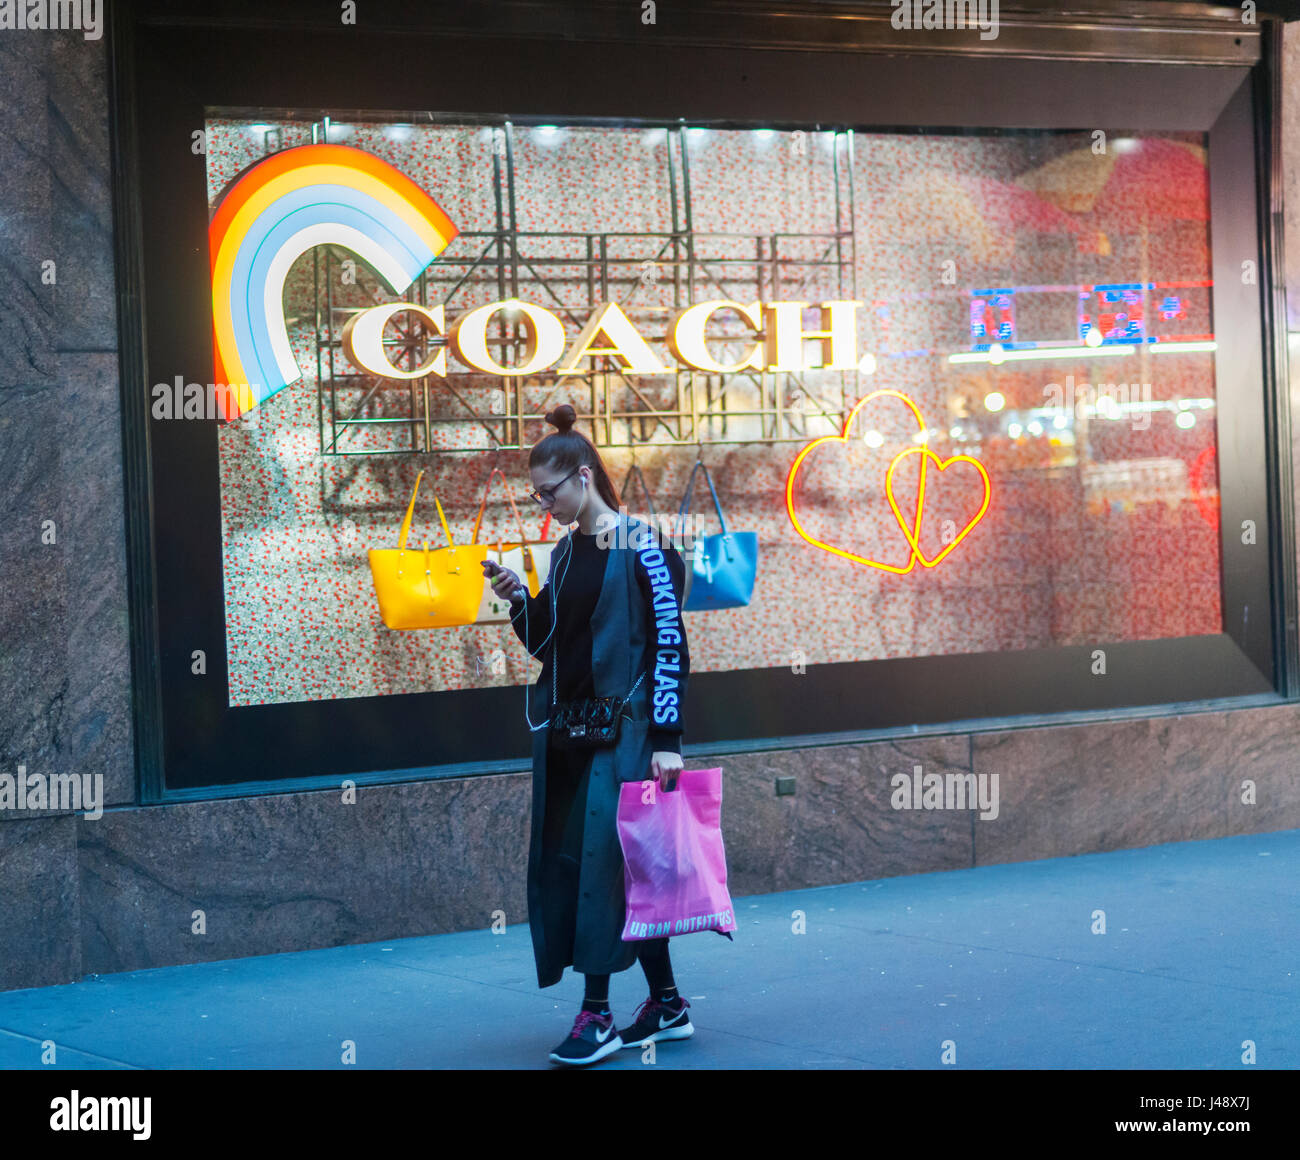 Macy's Department Store Windows In New York Promote Coach